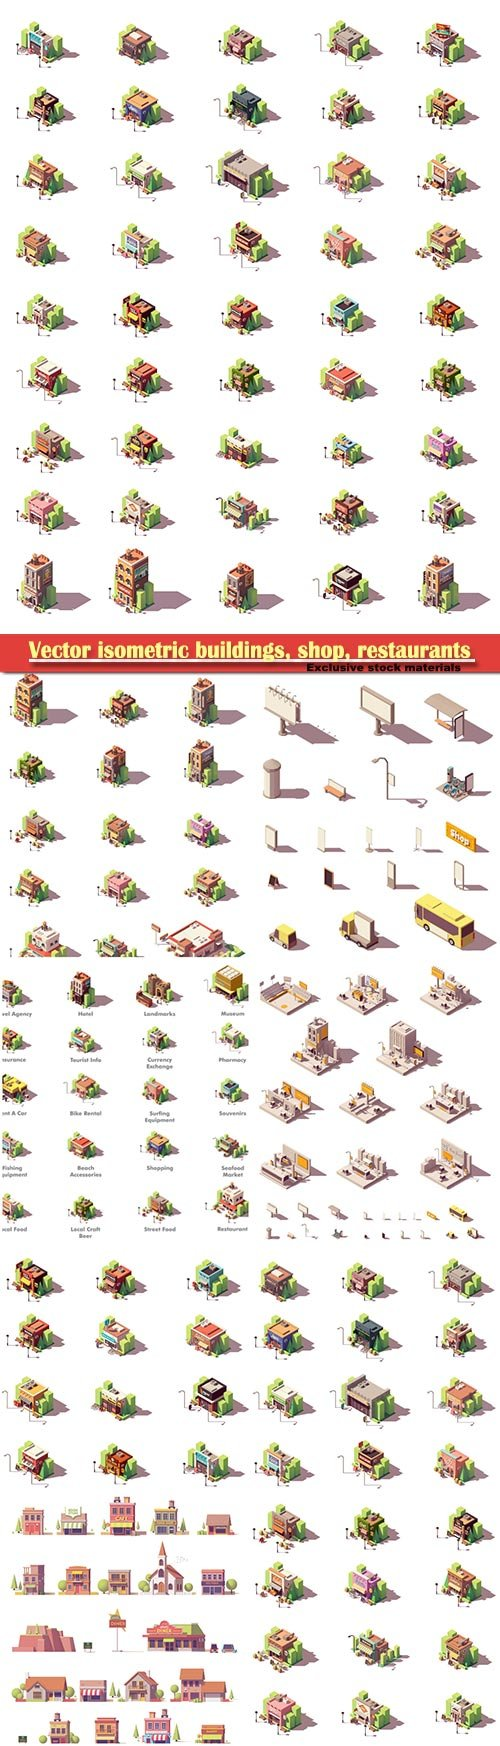 Vector isometric buildings, shop, restaurants, travel and tourism icons set